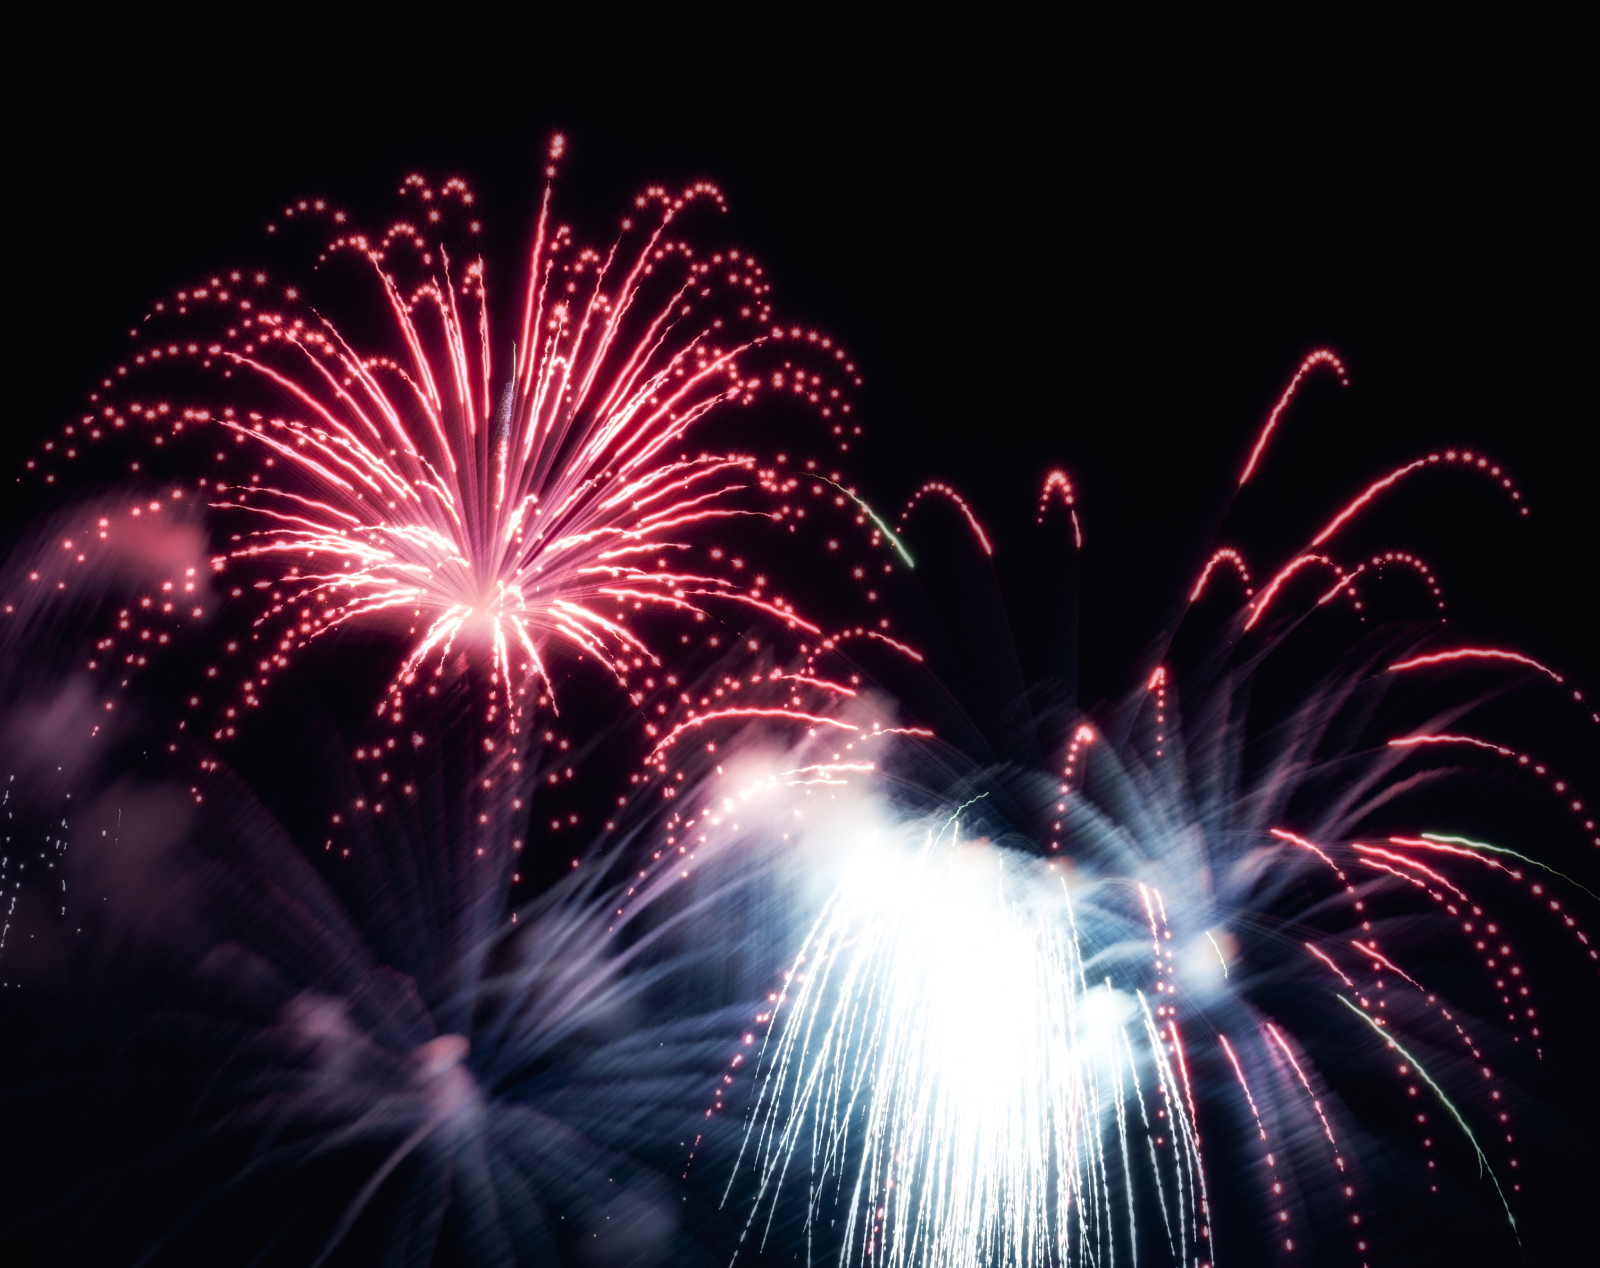 Nashville's Fourth of July Fireworks Show to be Largest in the Country